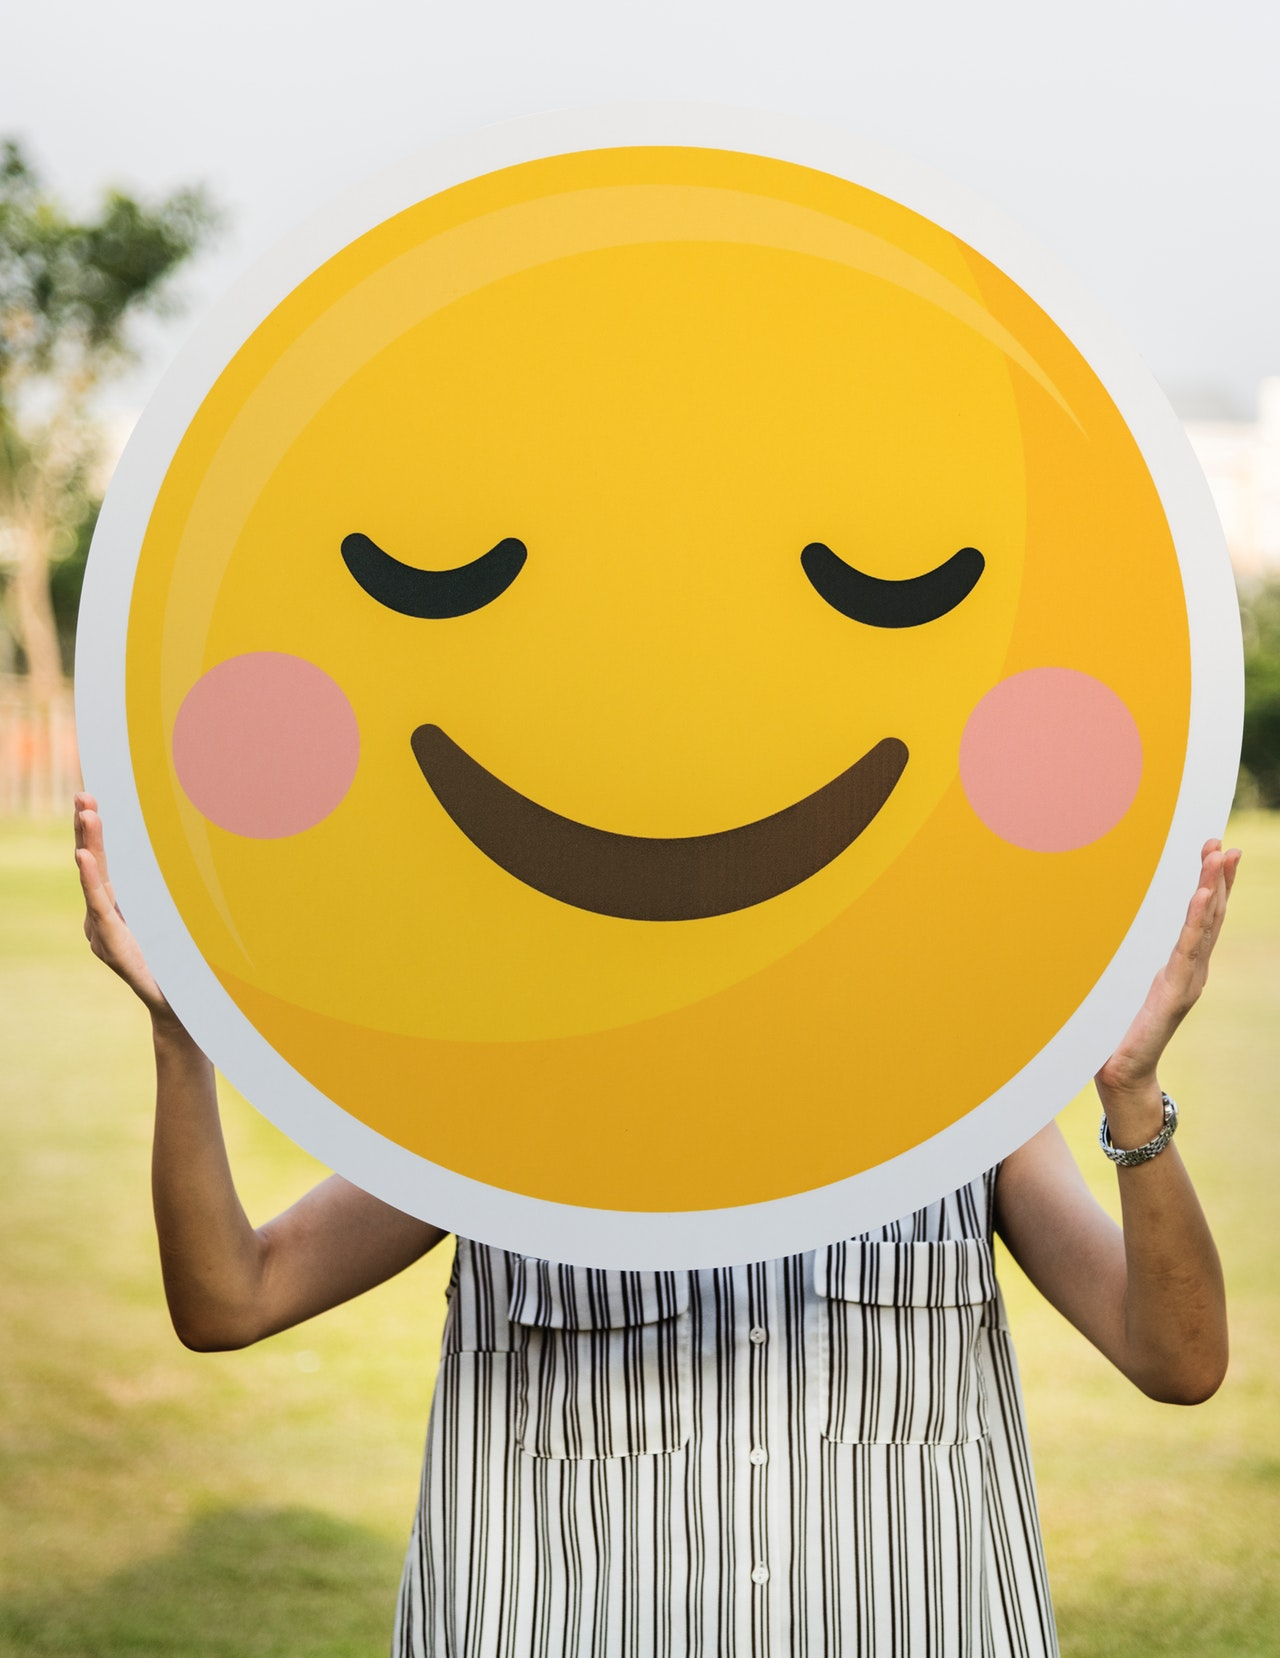 Person holding a large smiley face illustration.